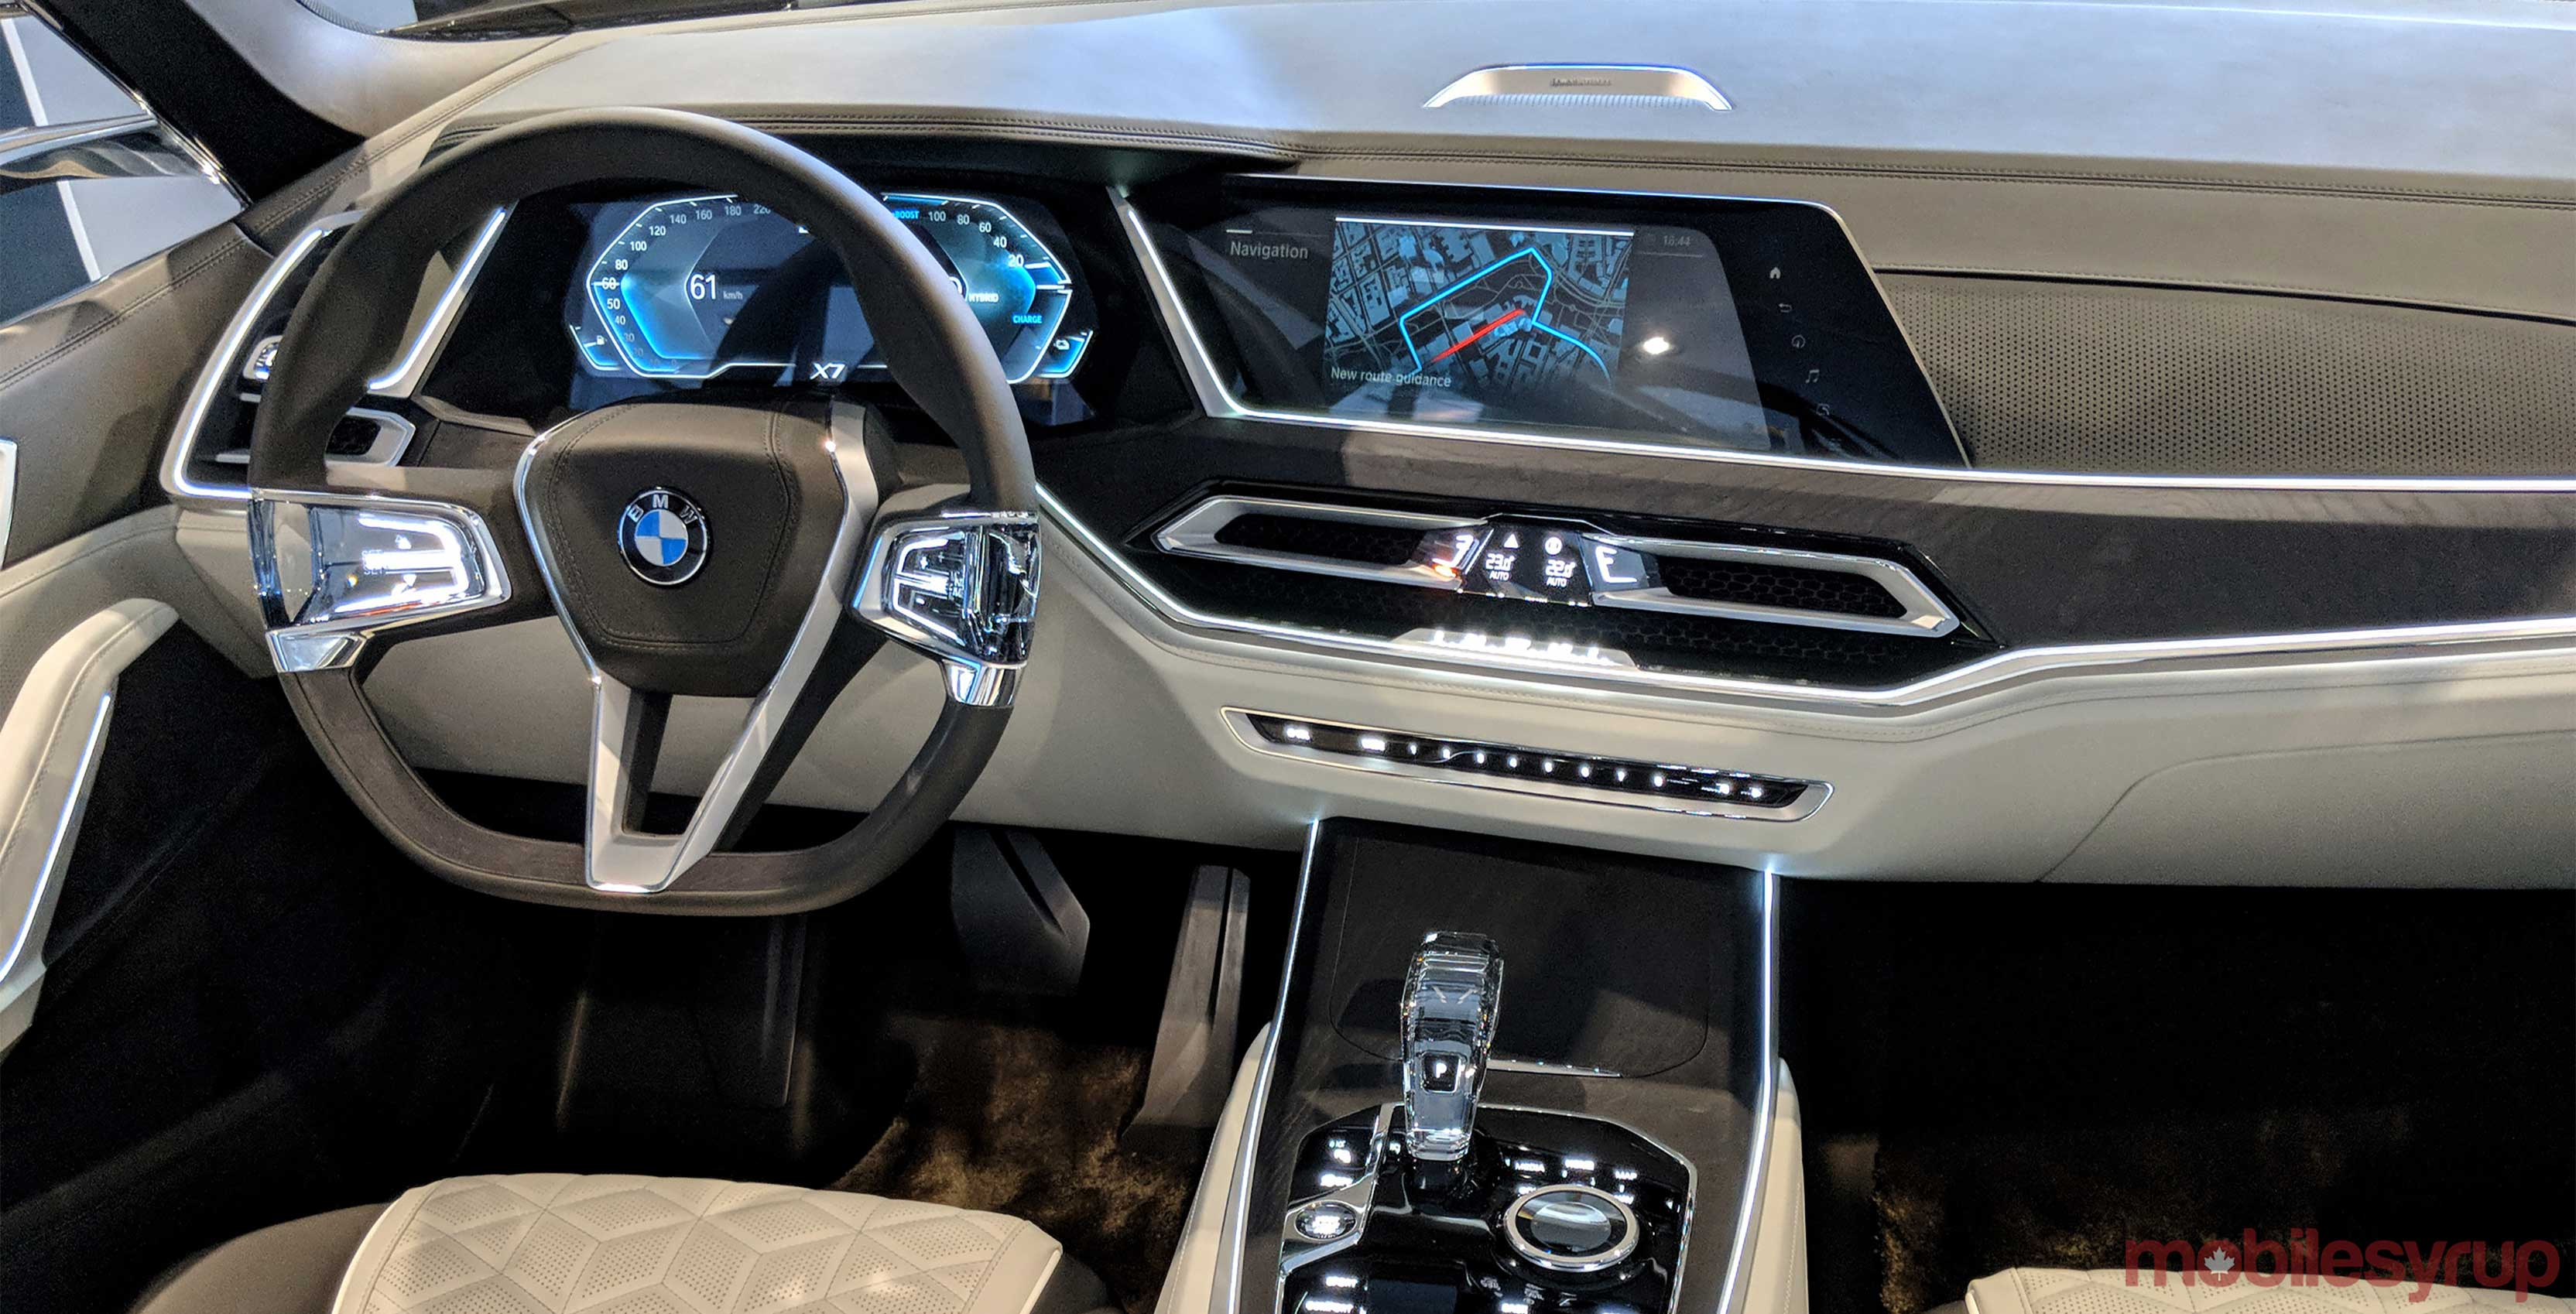 Bmw Showcases Concept X7 Iperformance Vehicle